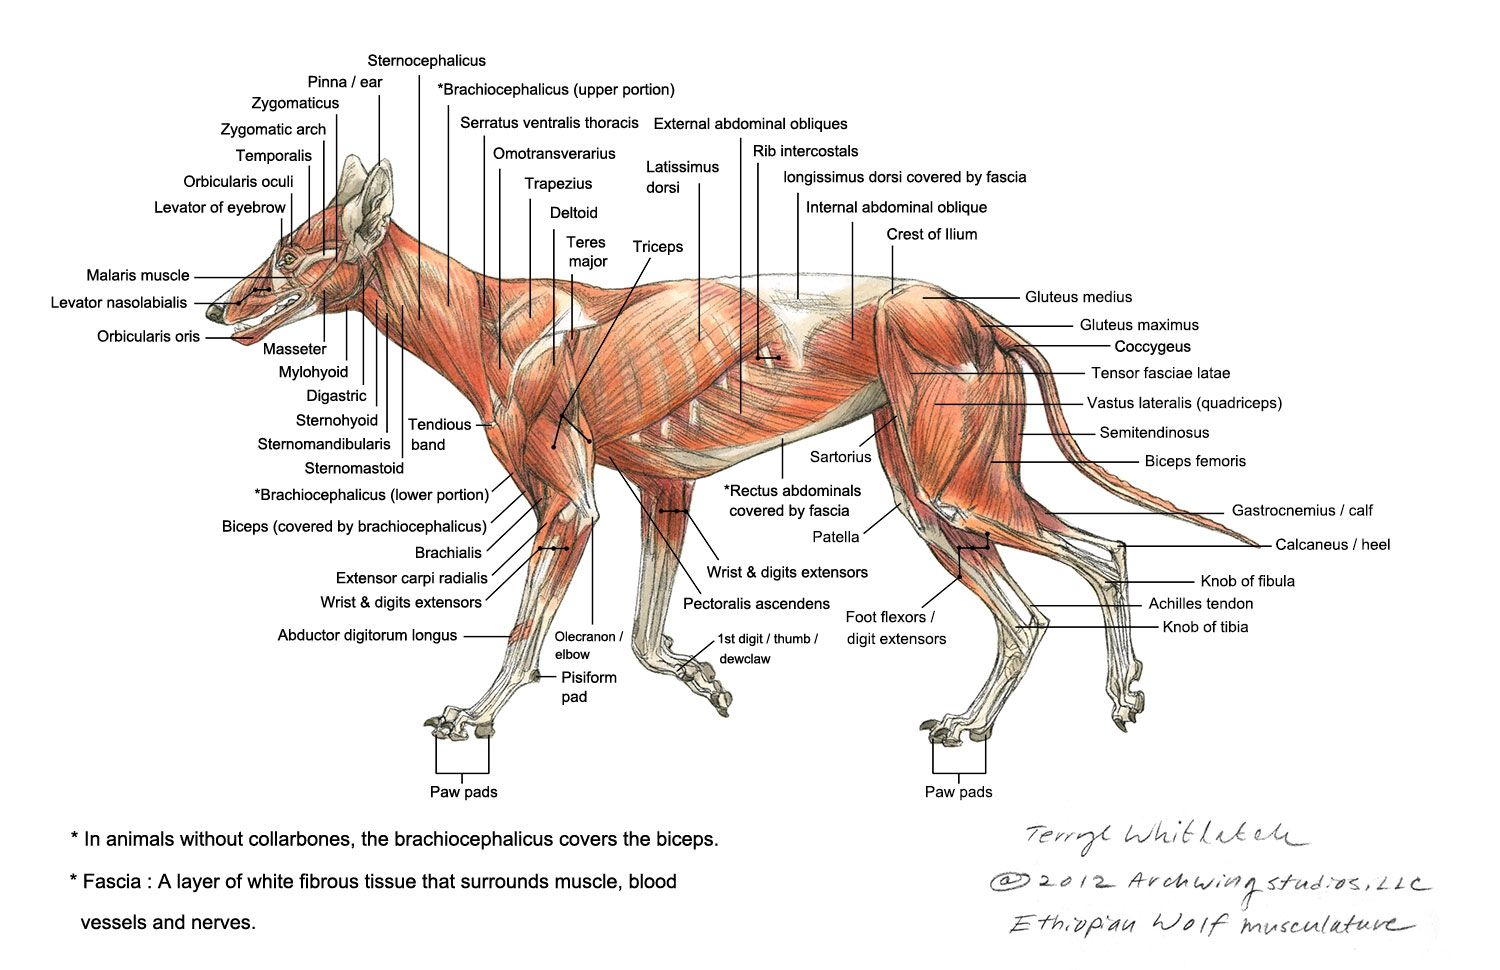 medium resolution of wolf muscle anatomy dog muscular system diagram wolf skeleton diagram wolf muscle